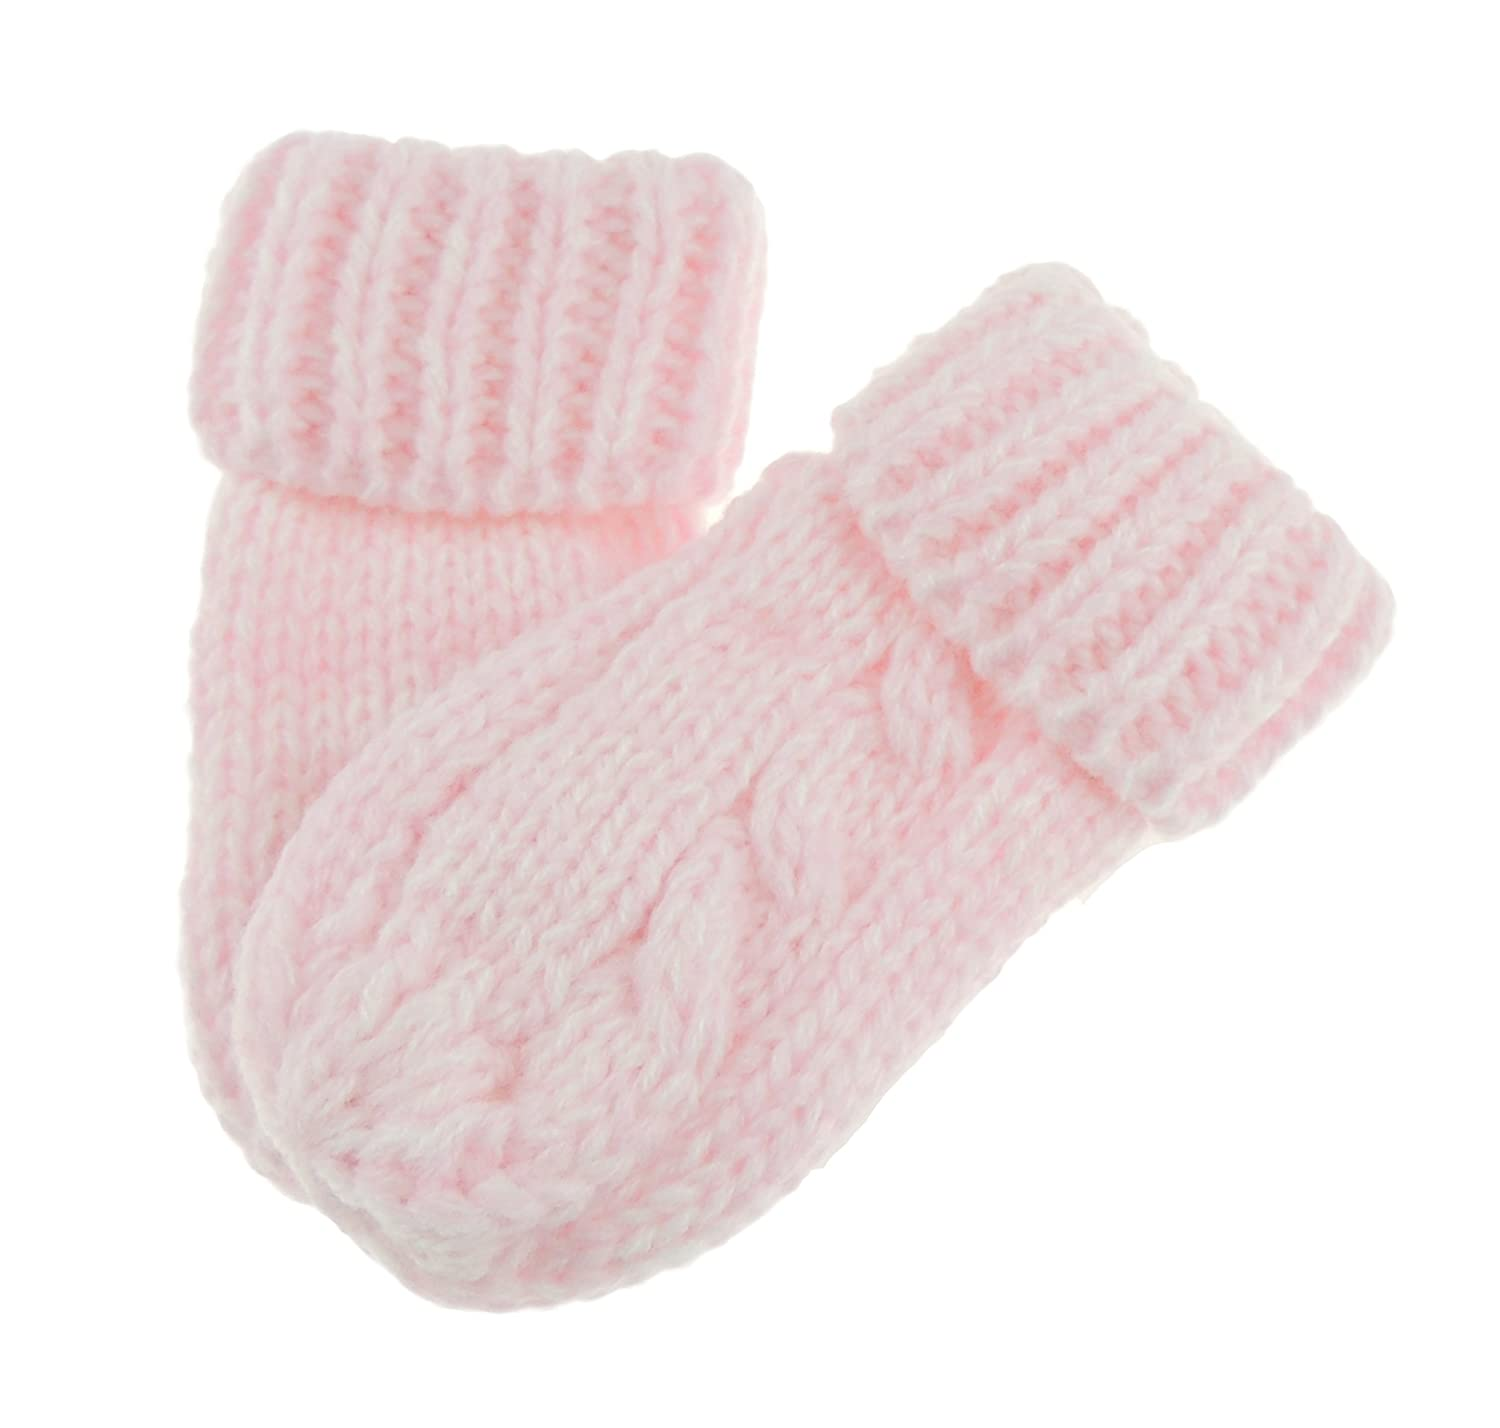 Baby Girls Boys Block Colour Warm Winter Fine Knit Mitts Newborn to 12 Months (Ivory) Glamour Girlz